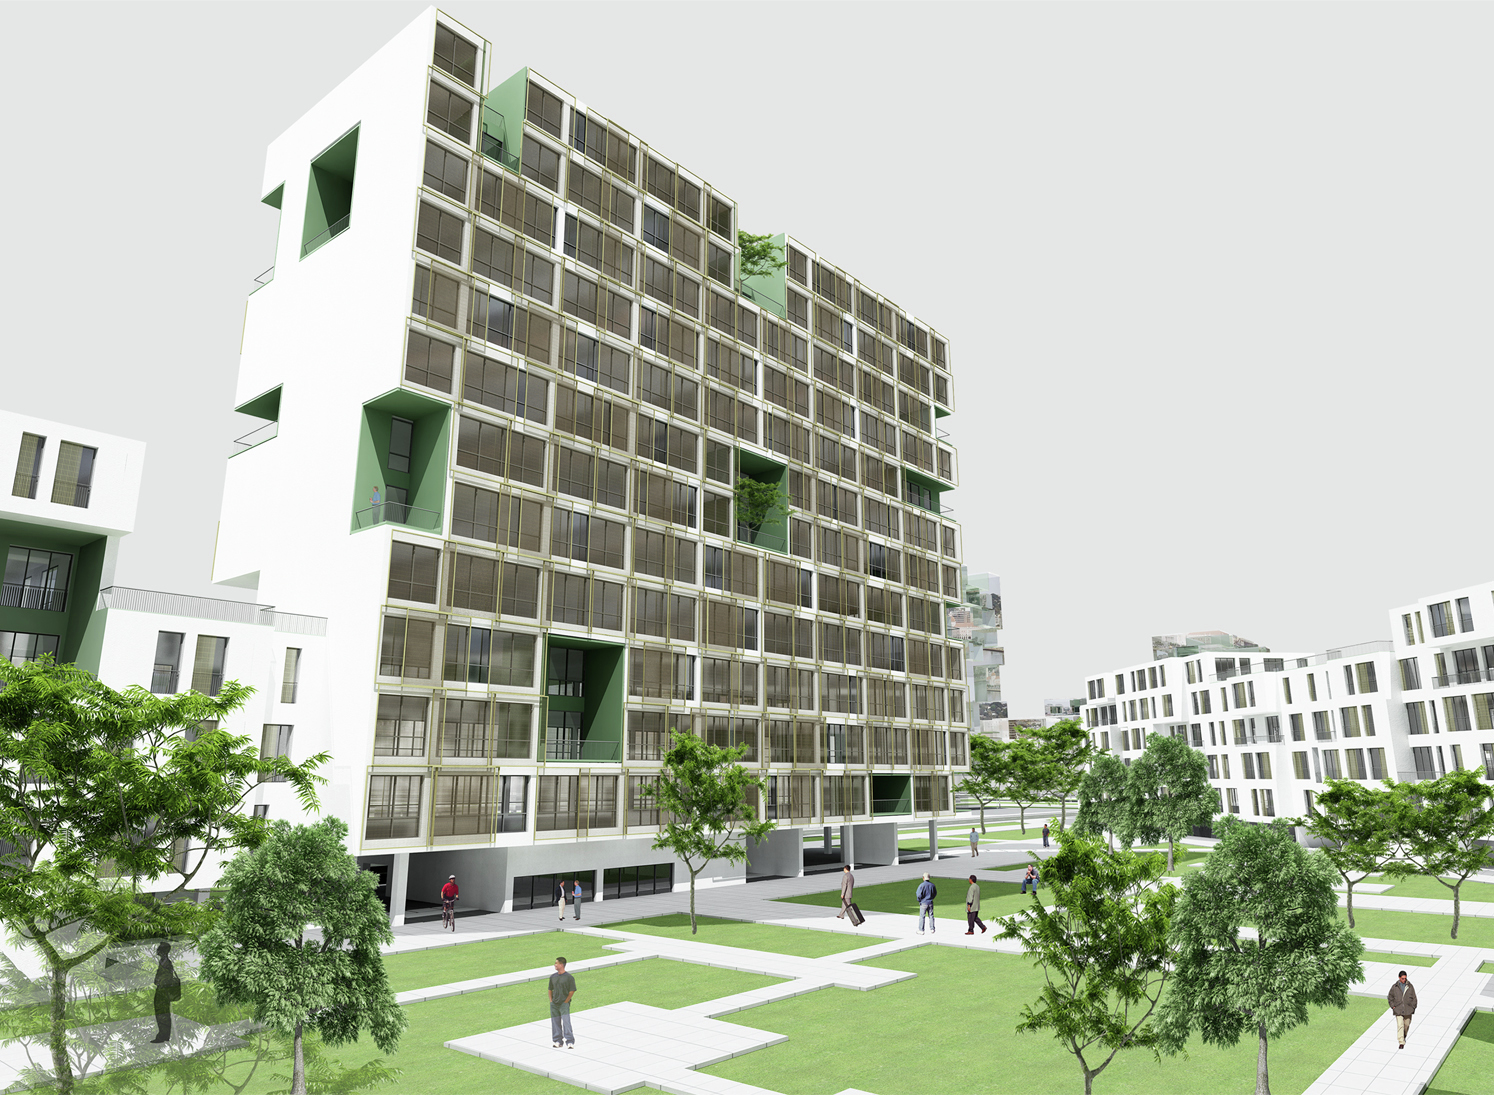 The Green Building Cost